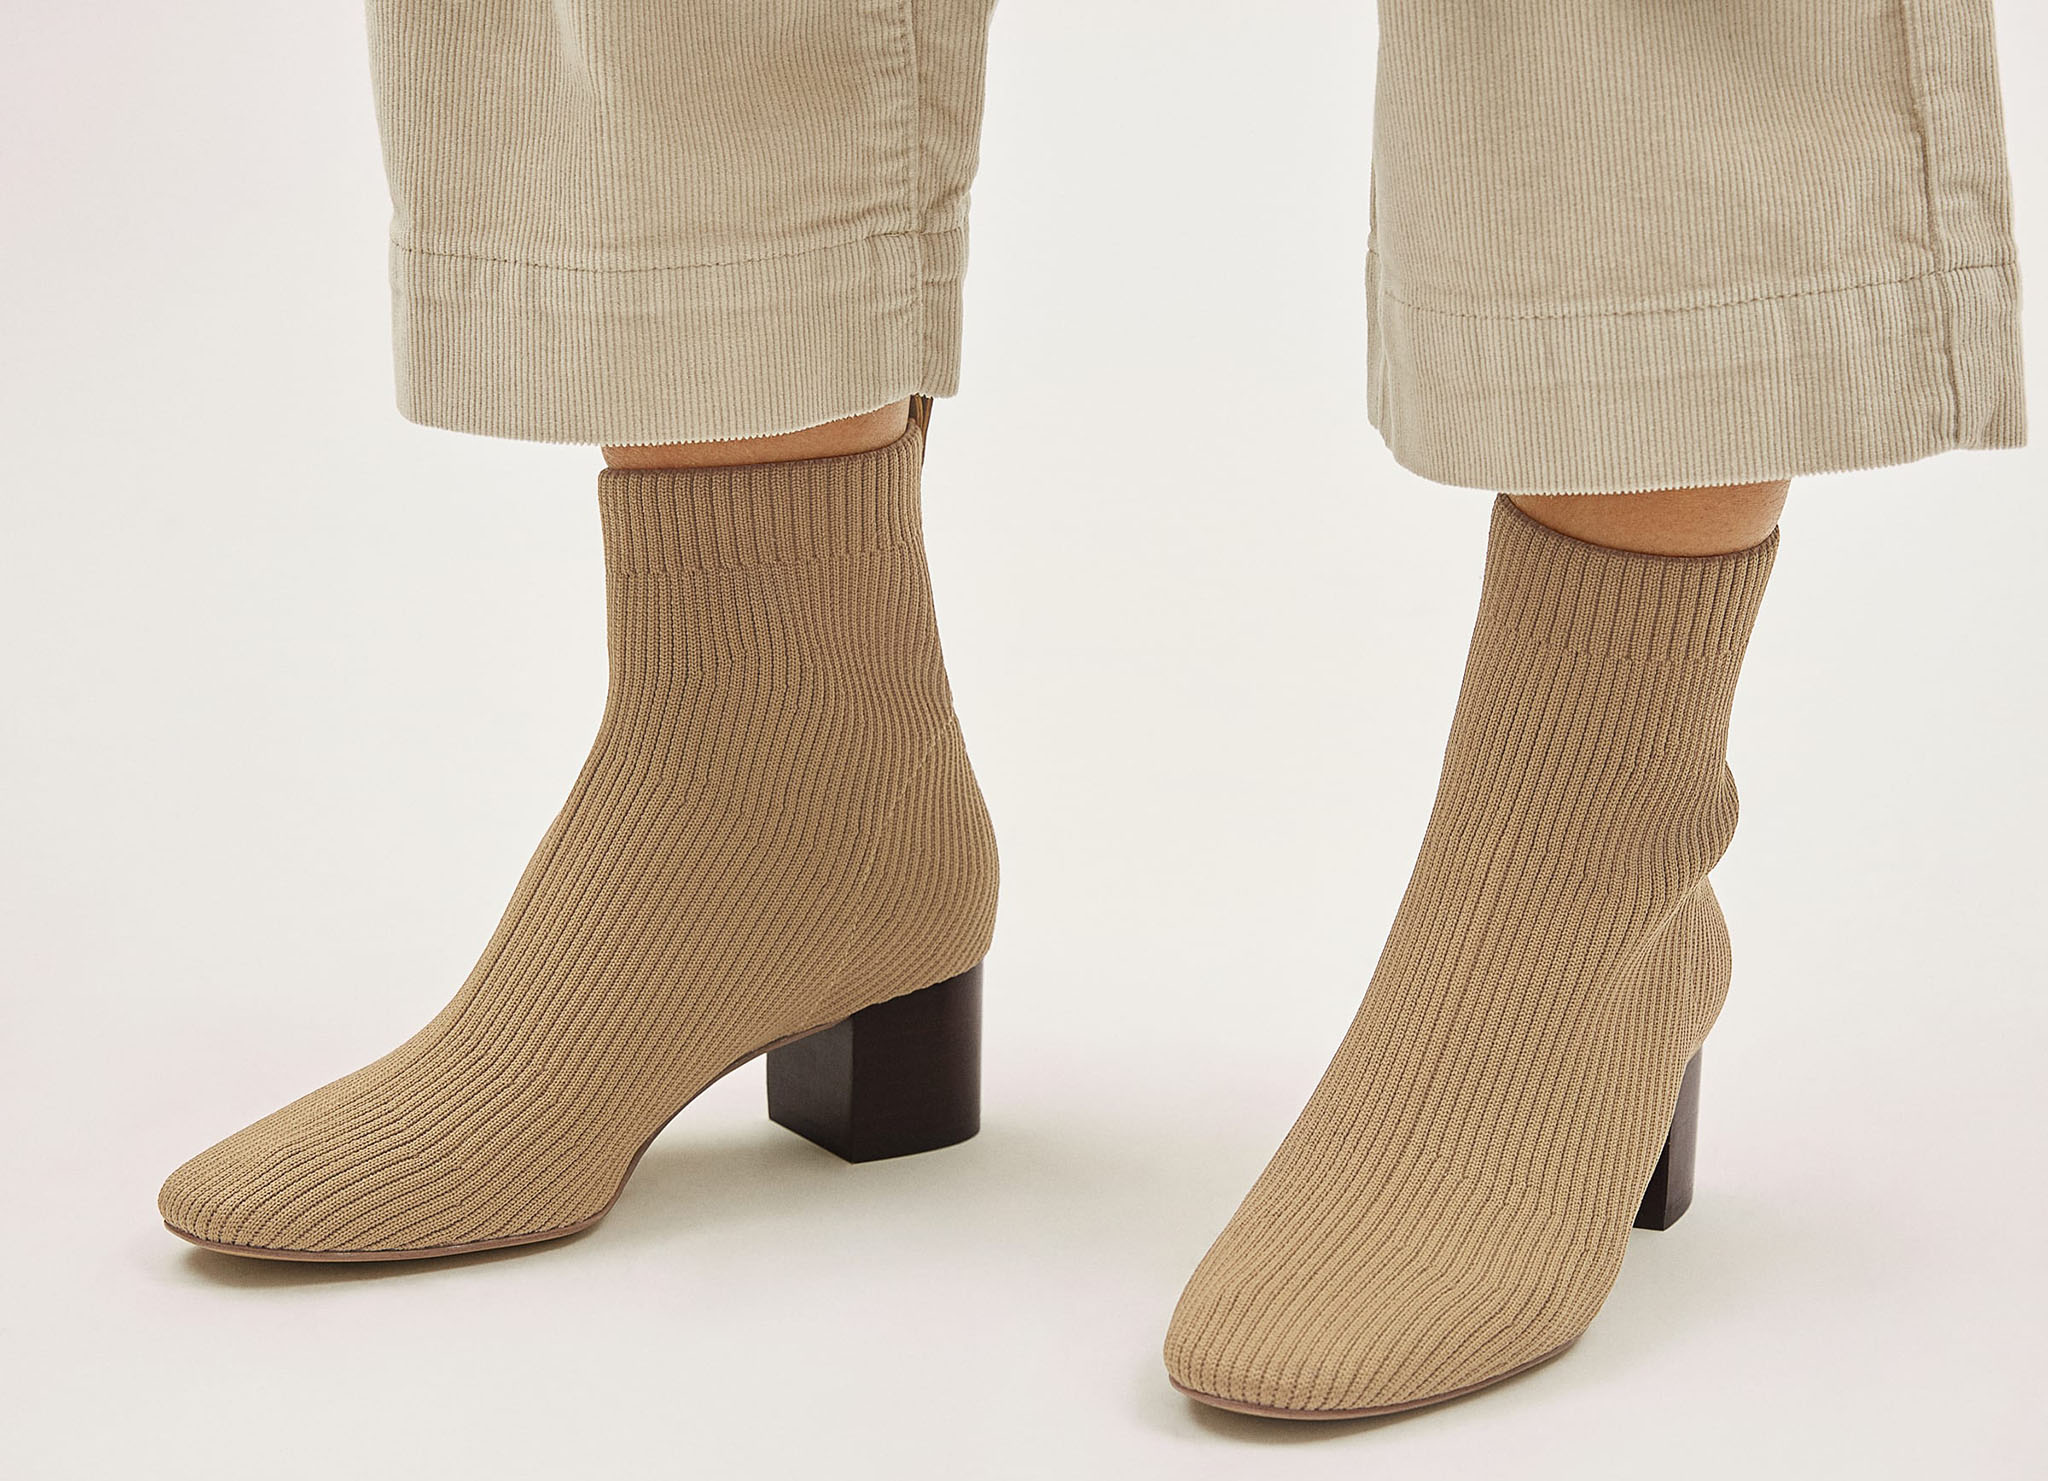 A flattering pair of boots made from textured re-knit fabric with chic rib detailing and comfy heels